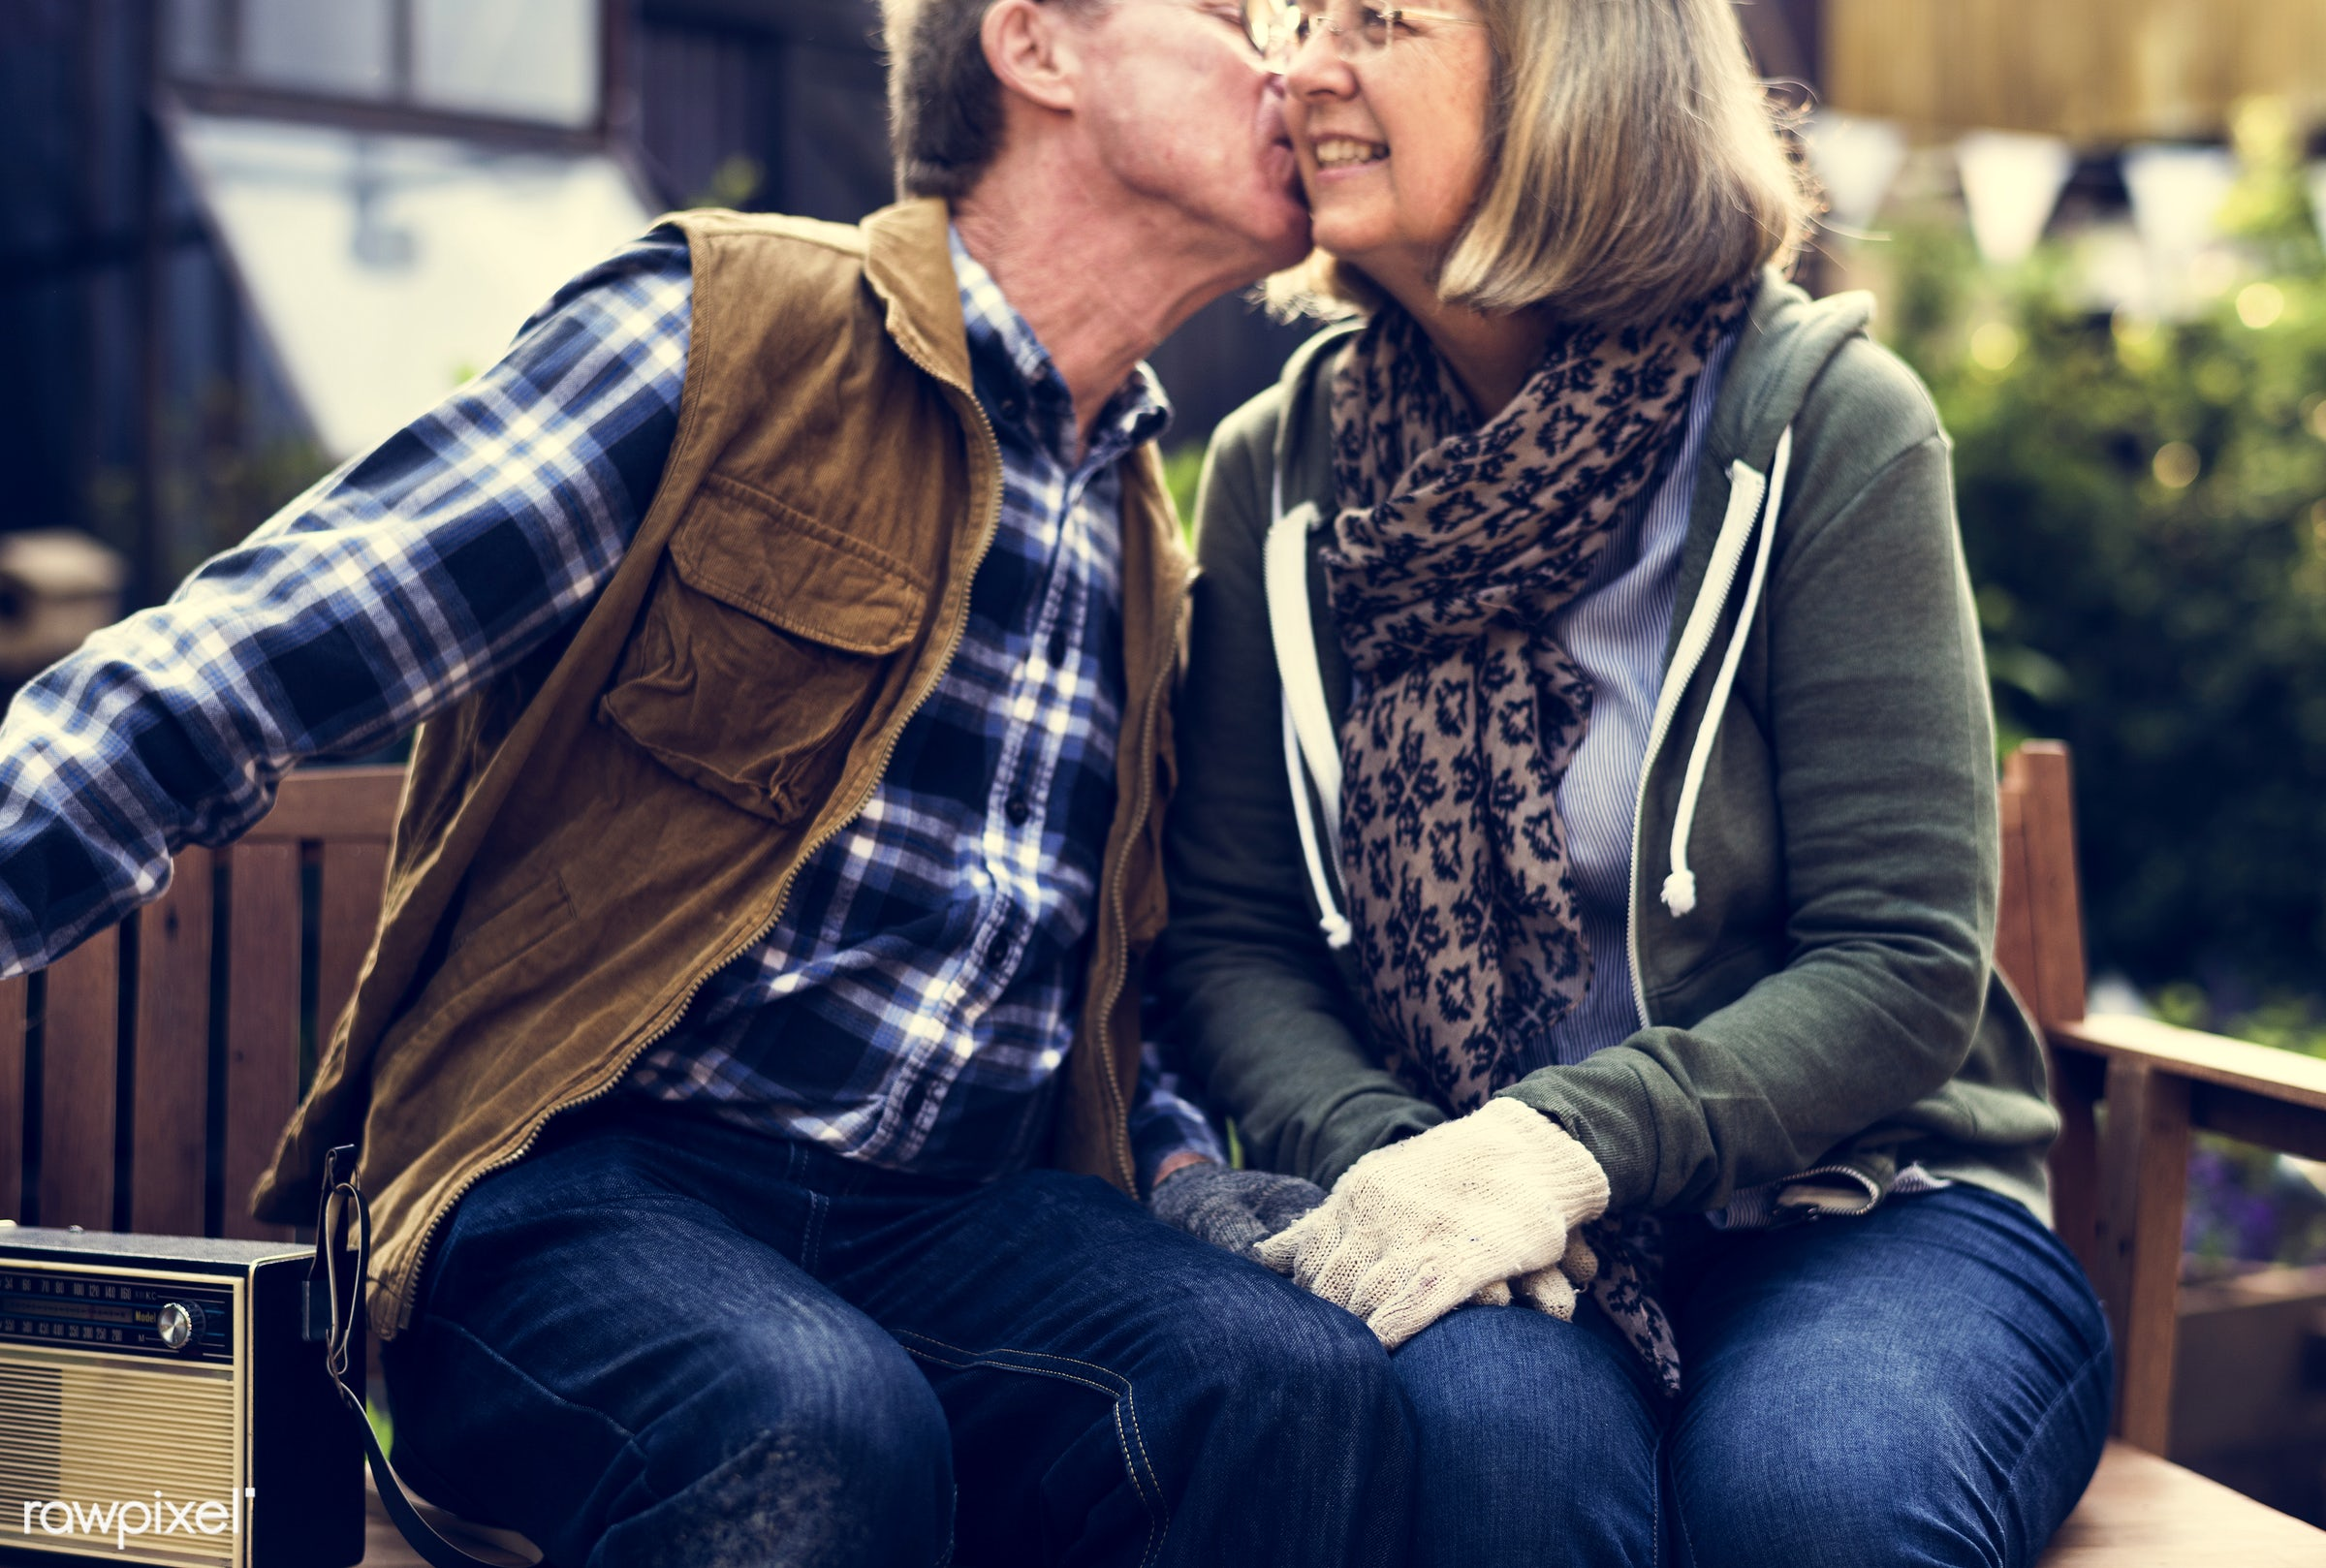 expression, person, bench, relax, holding, people, together, love, break, kiss, retirement, nature, family, woman, backyard...